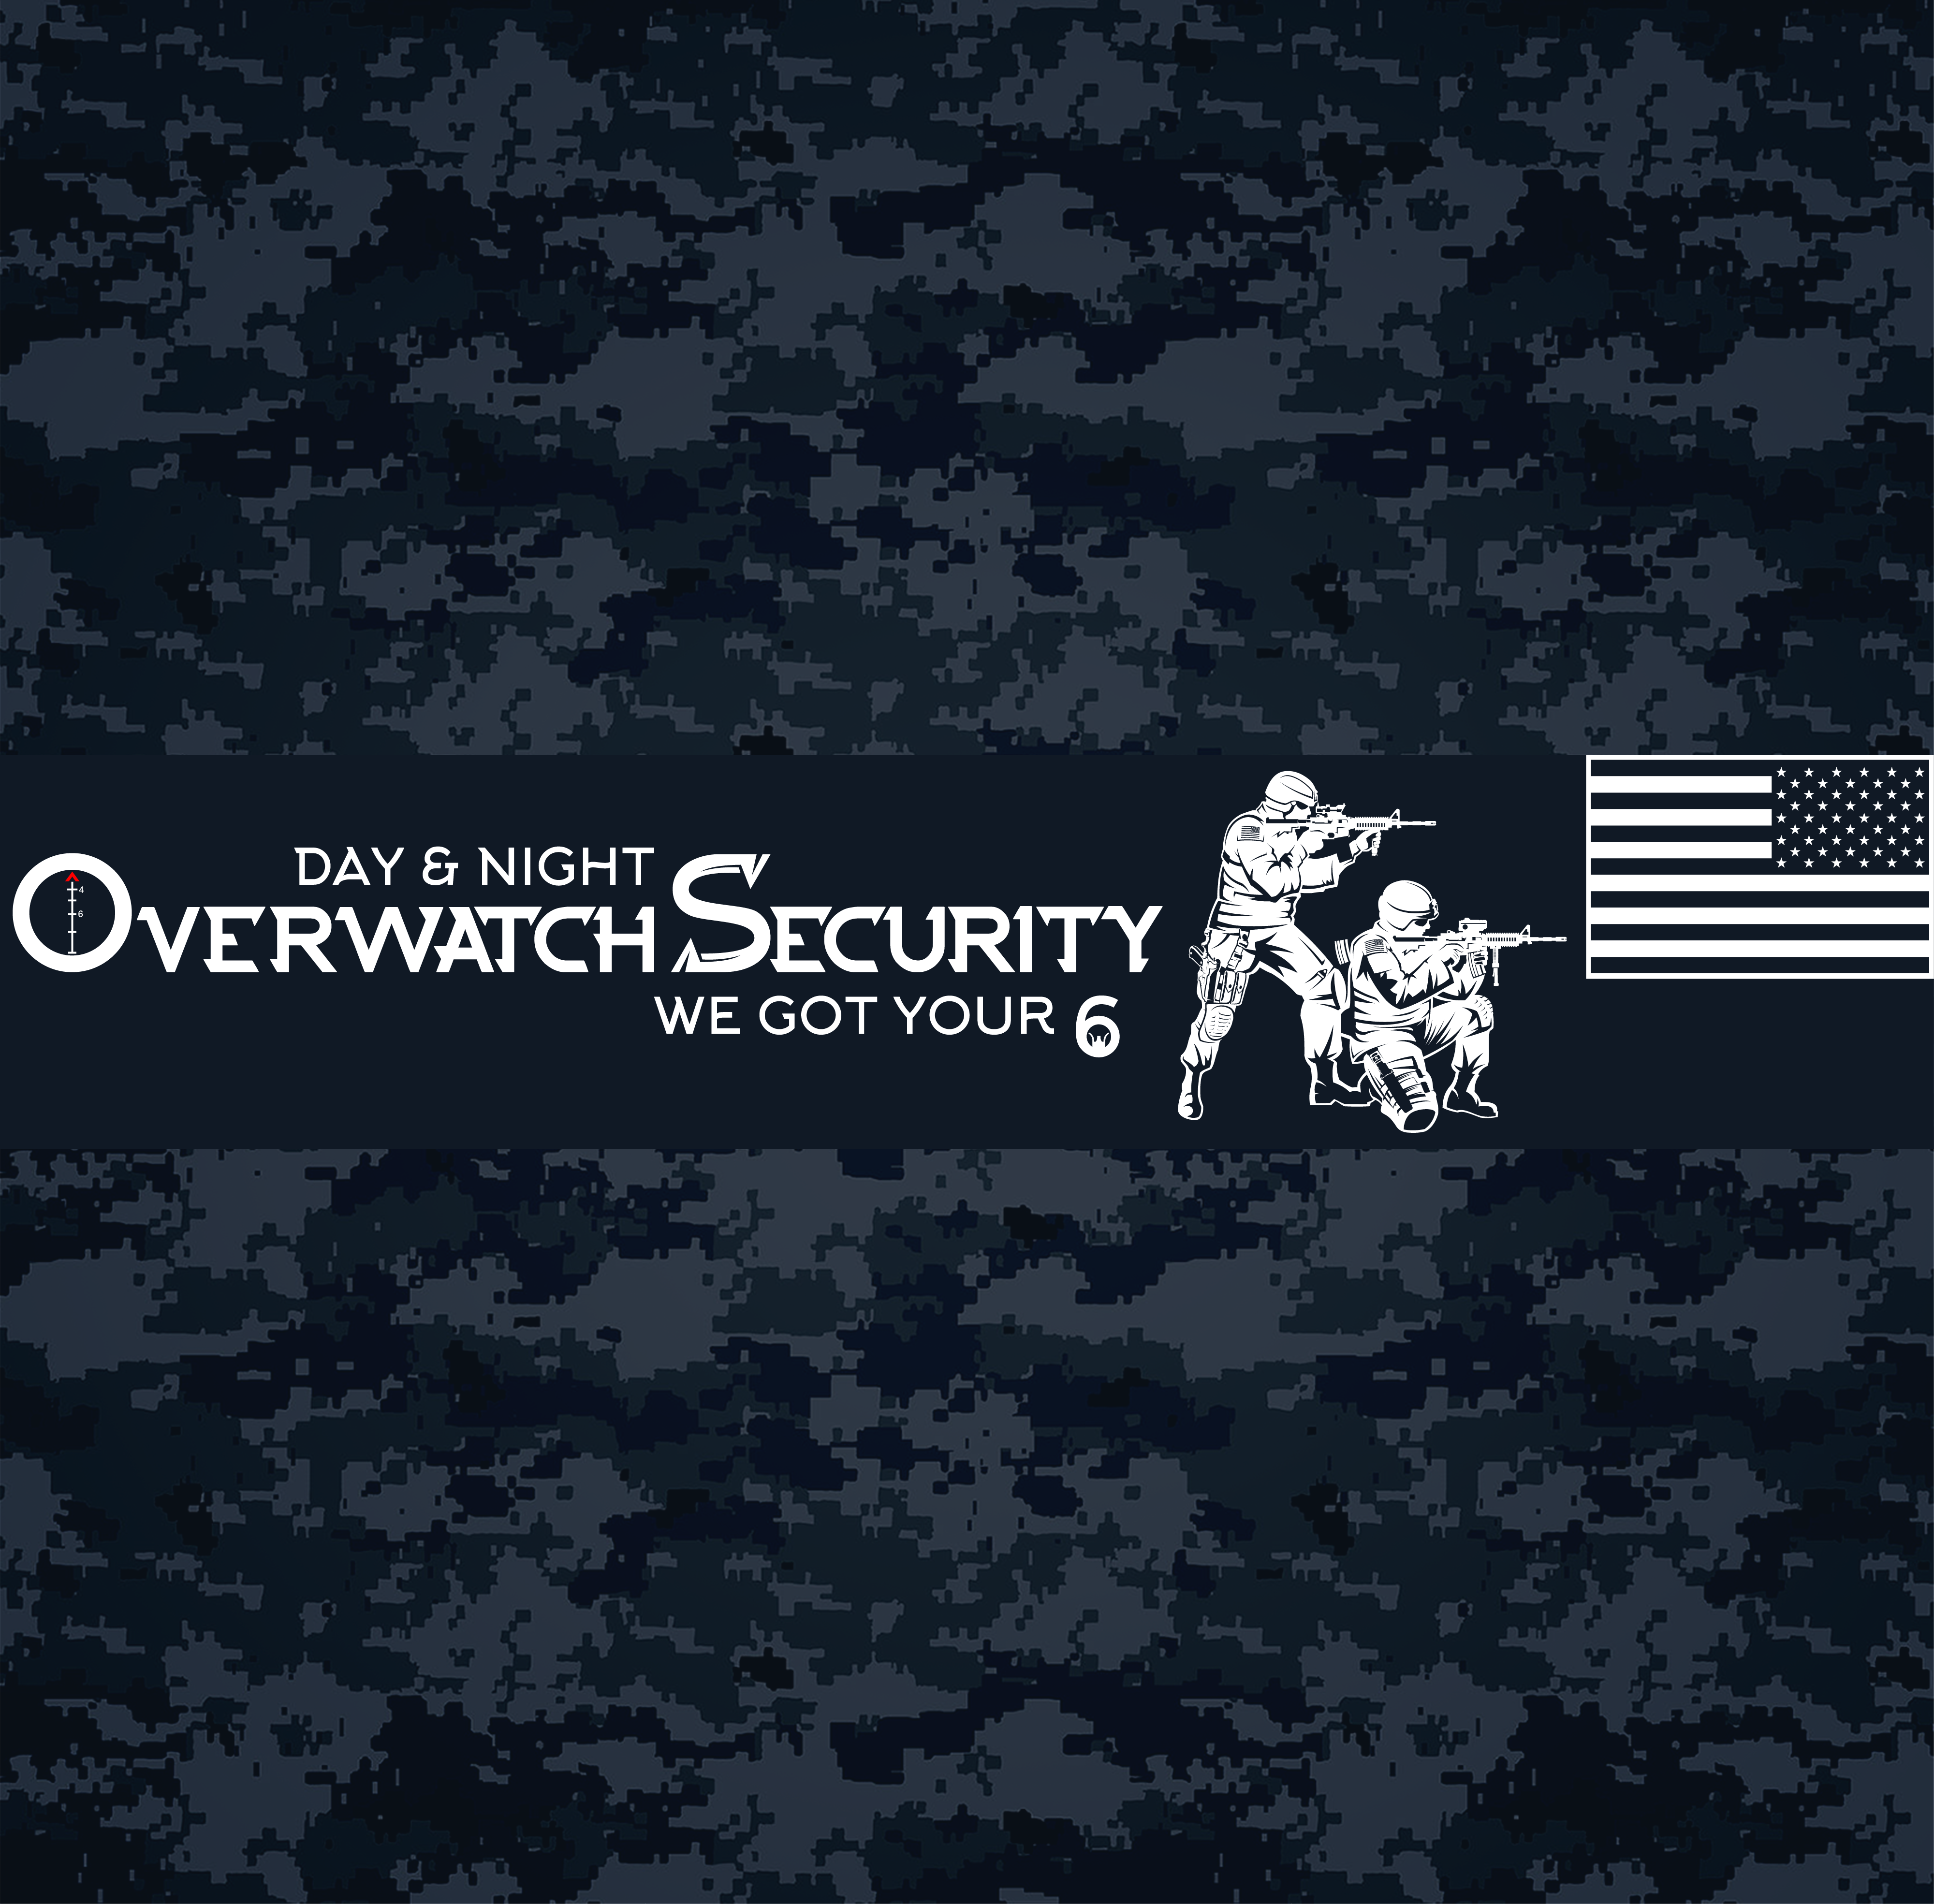 Overwatch Security; Day & night, we got your 6///// Logo Only